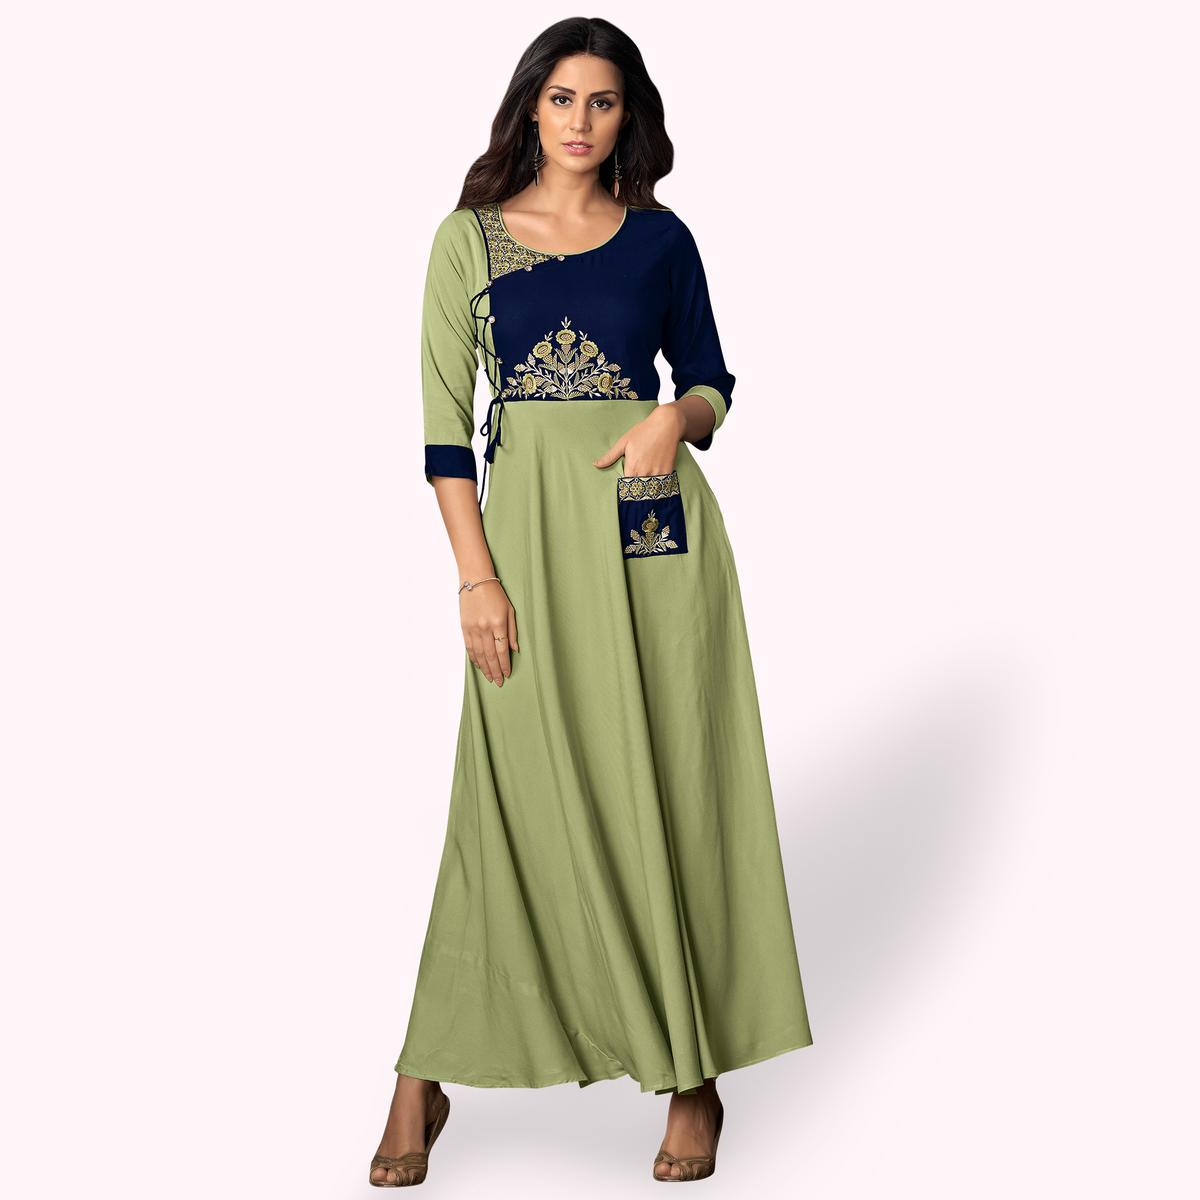 Charming Pale Green-Blue Colored Partywear Embroidered Rayon Kurti